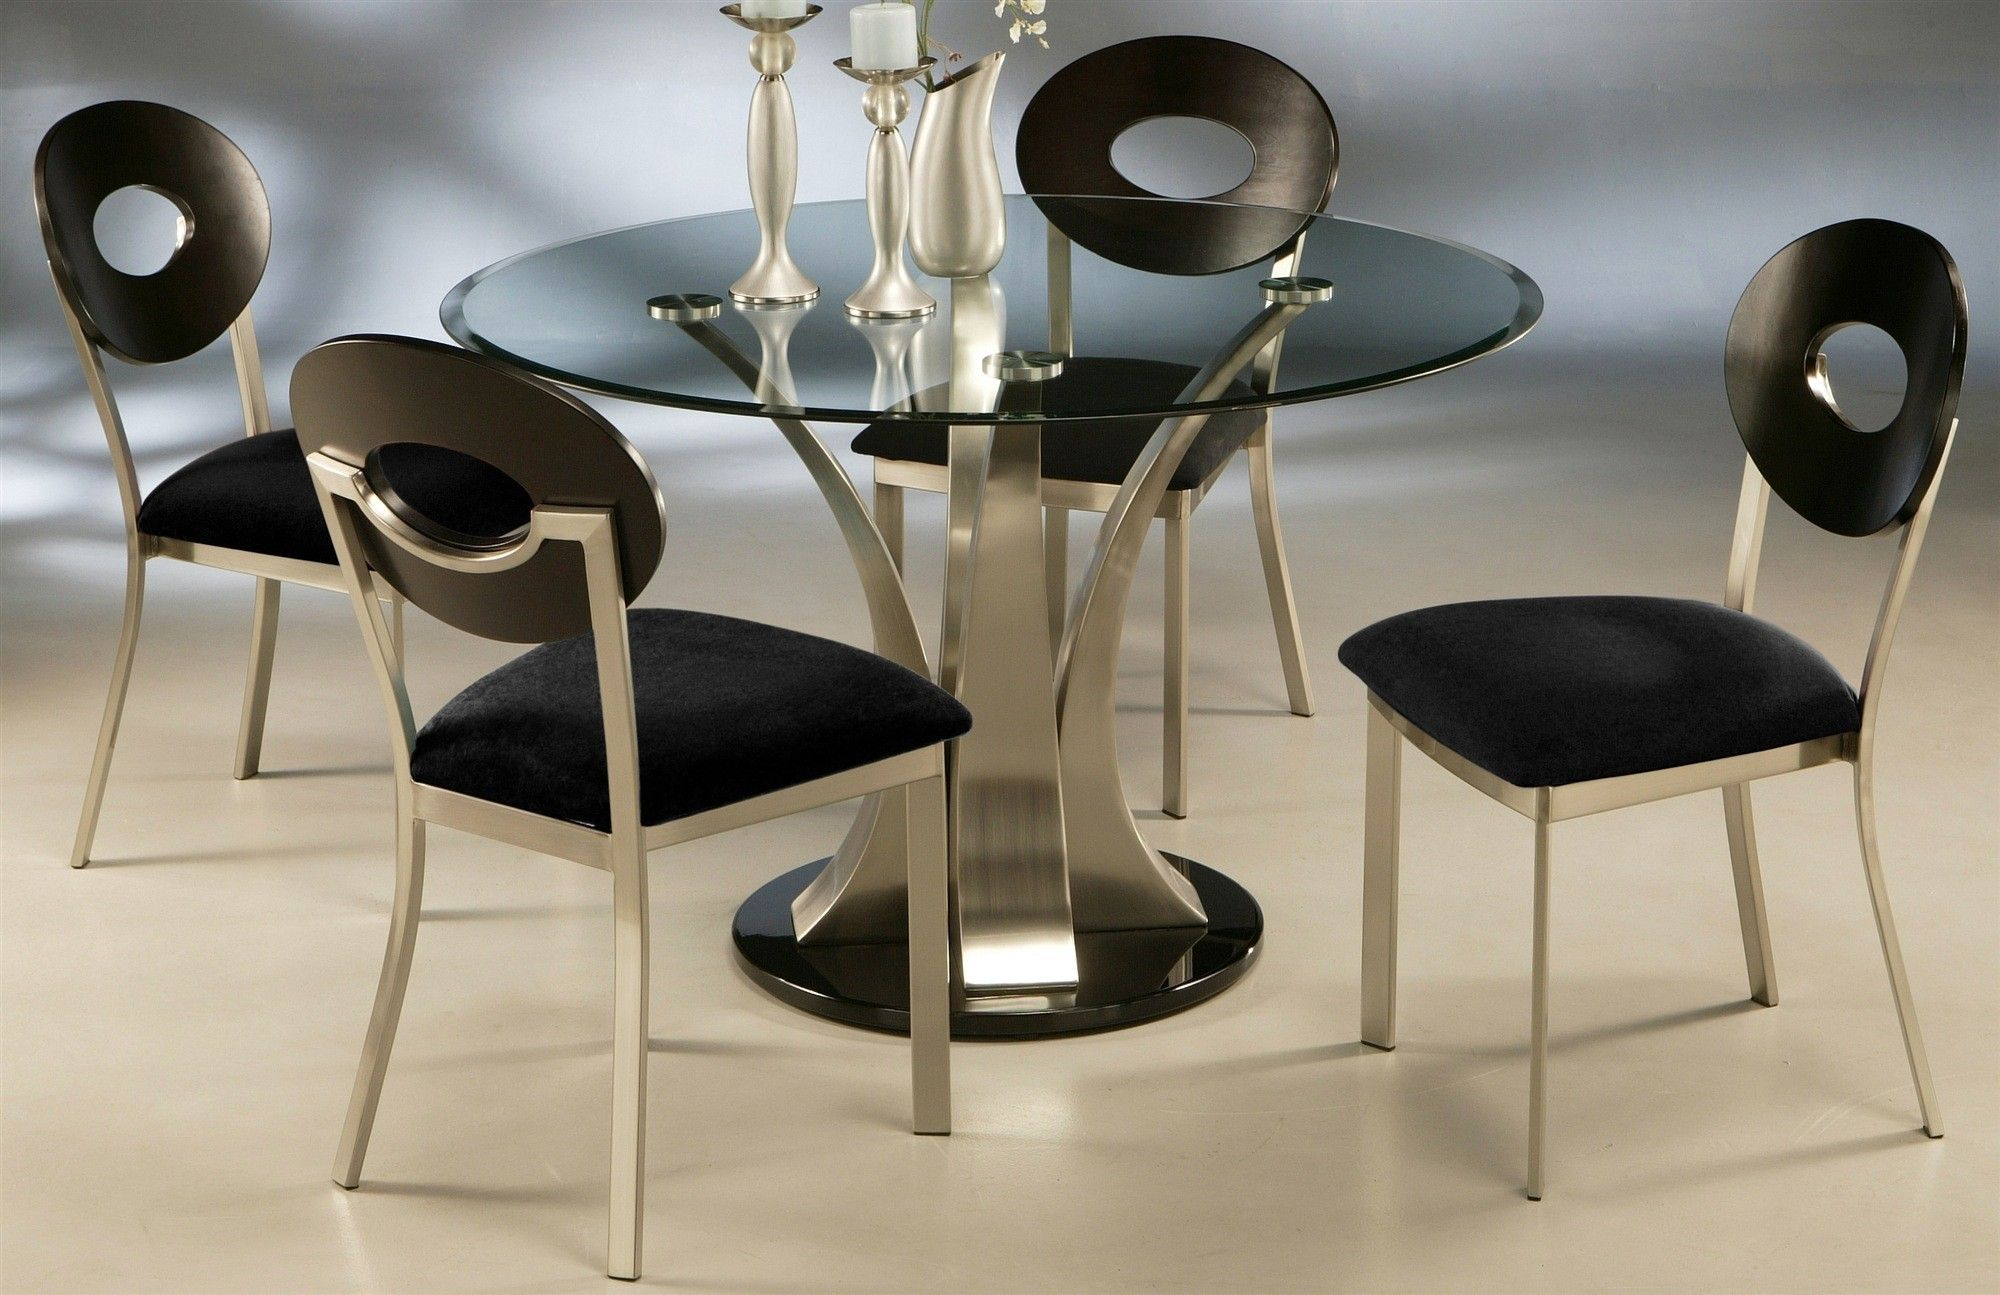 Round Table Dining Room Furniture  Home Design  Pinterest Extraordinary Bases For Glass Dining Room Tables Inspiration